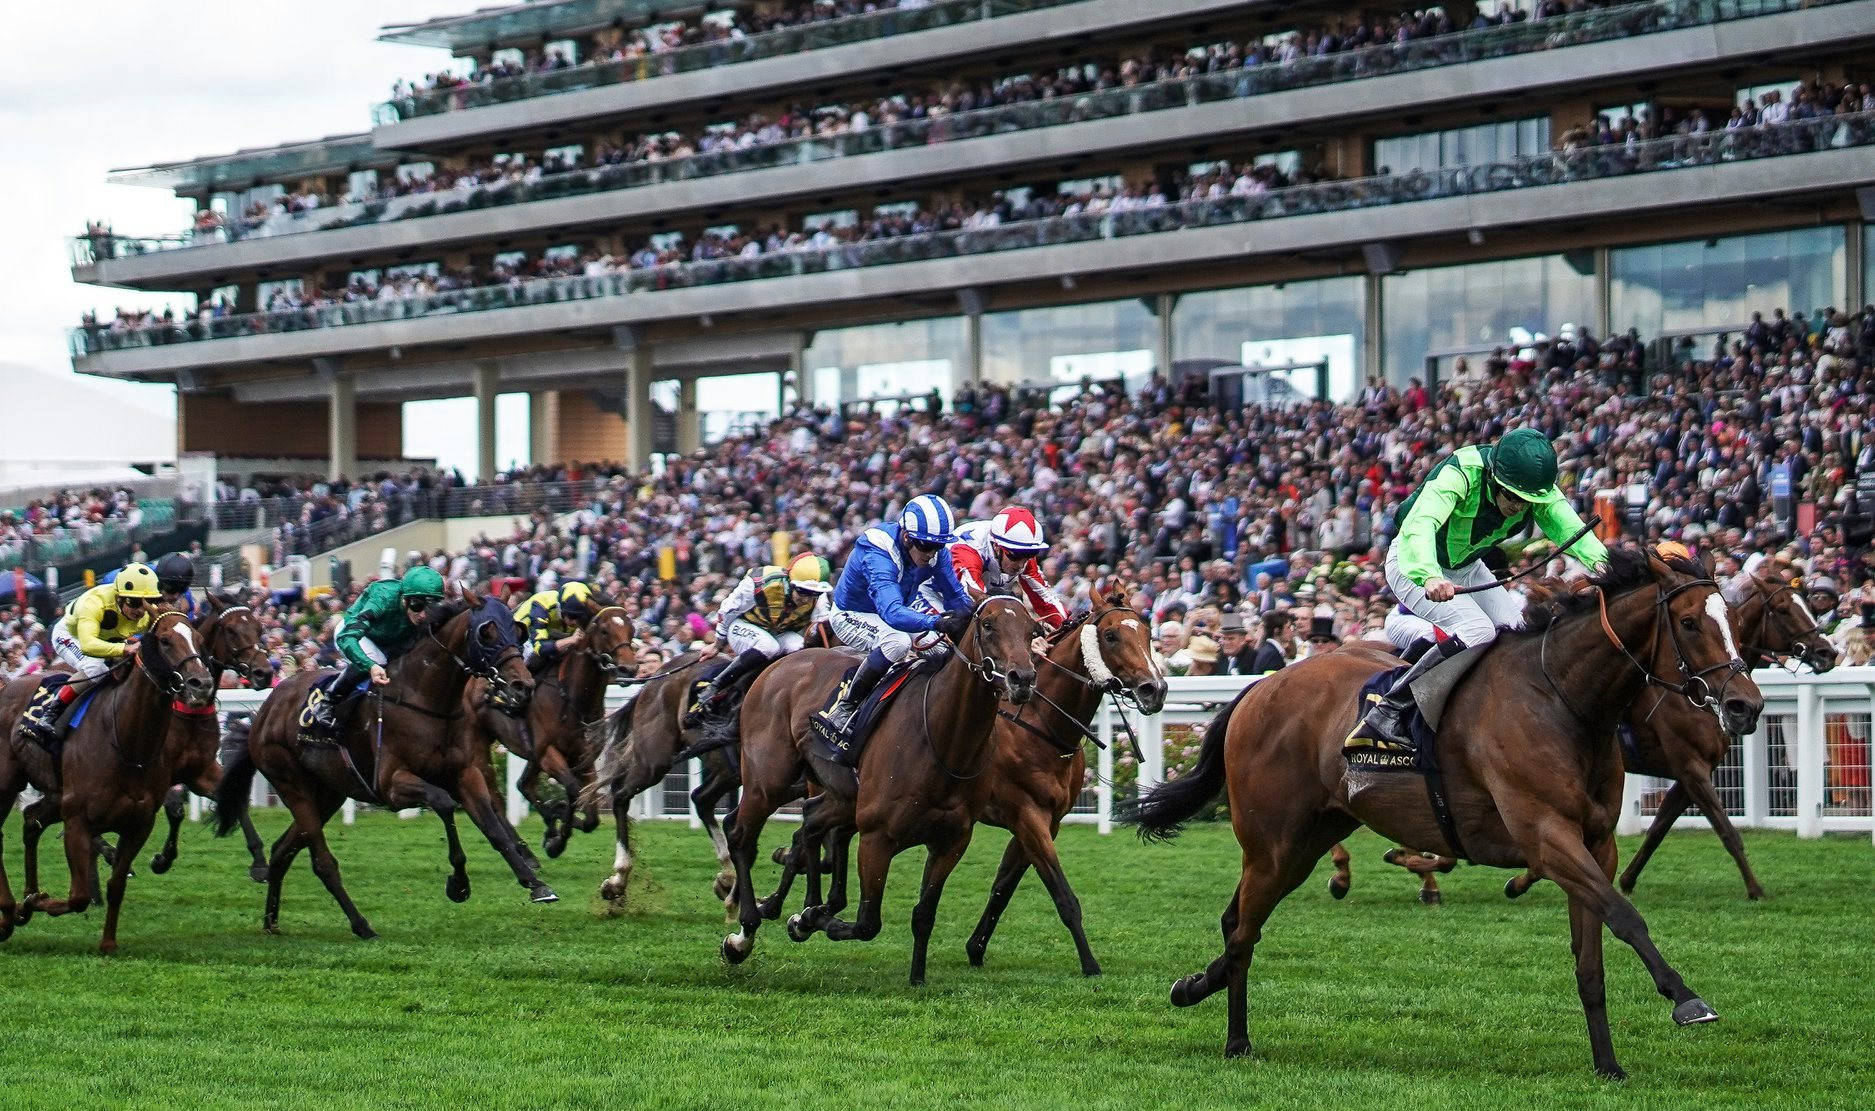 Four Breeders Cup Challenge Races At Royal Ascot